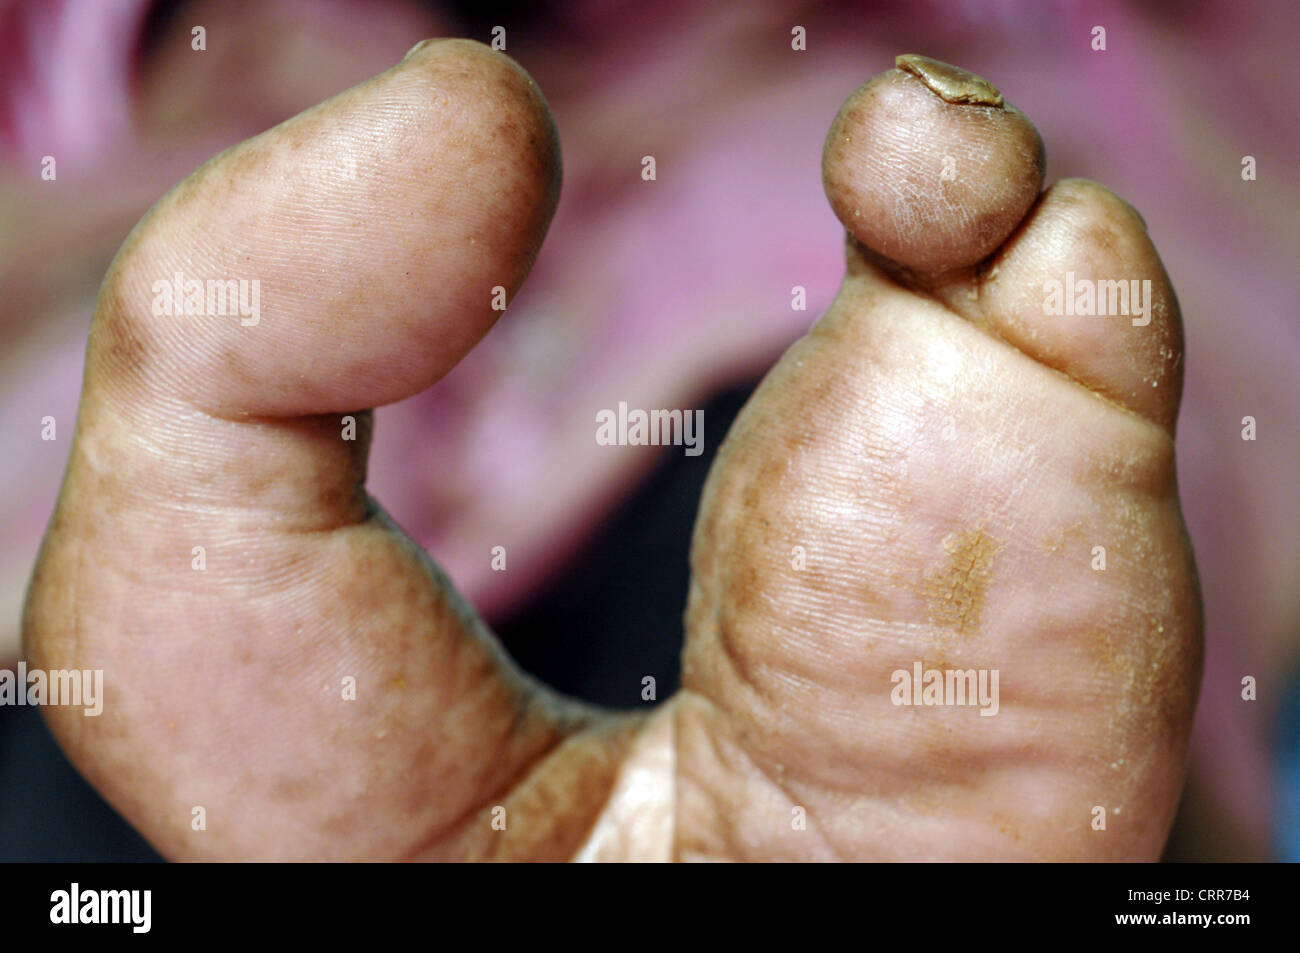 Close up of a left foot with second, third and fourth toes amputated. - Stock Image